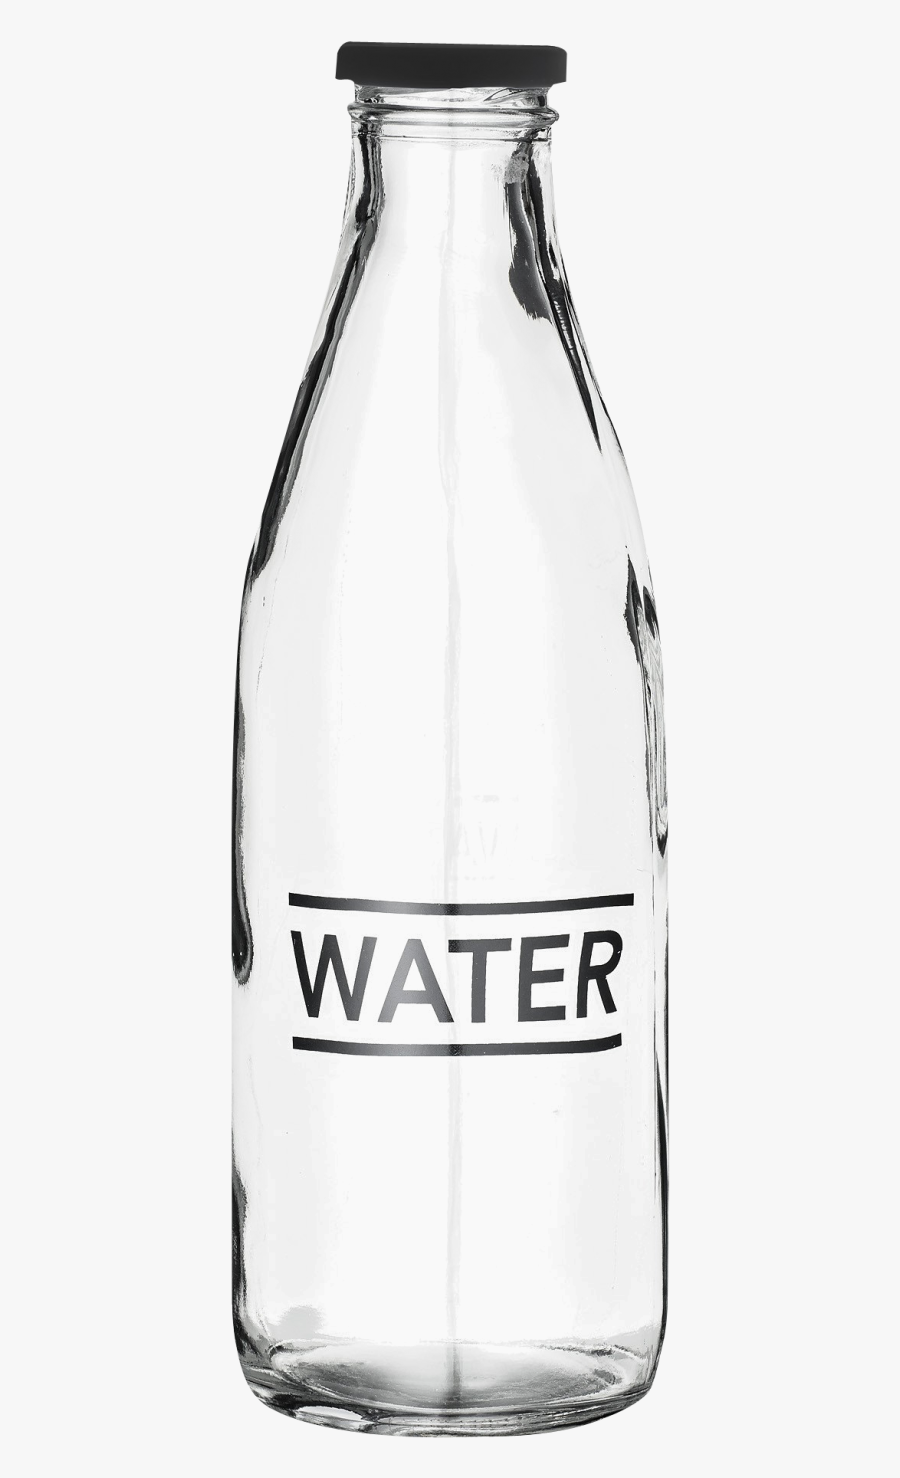 Glass Water Bottle Png Image - Glass Water Bottle Transparent, Transparent Clipart